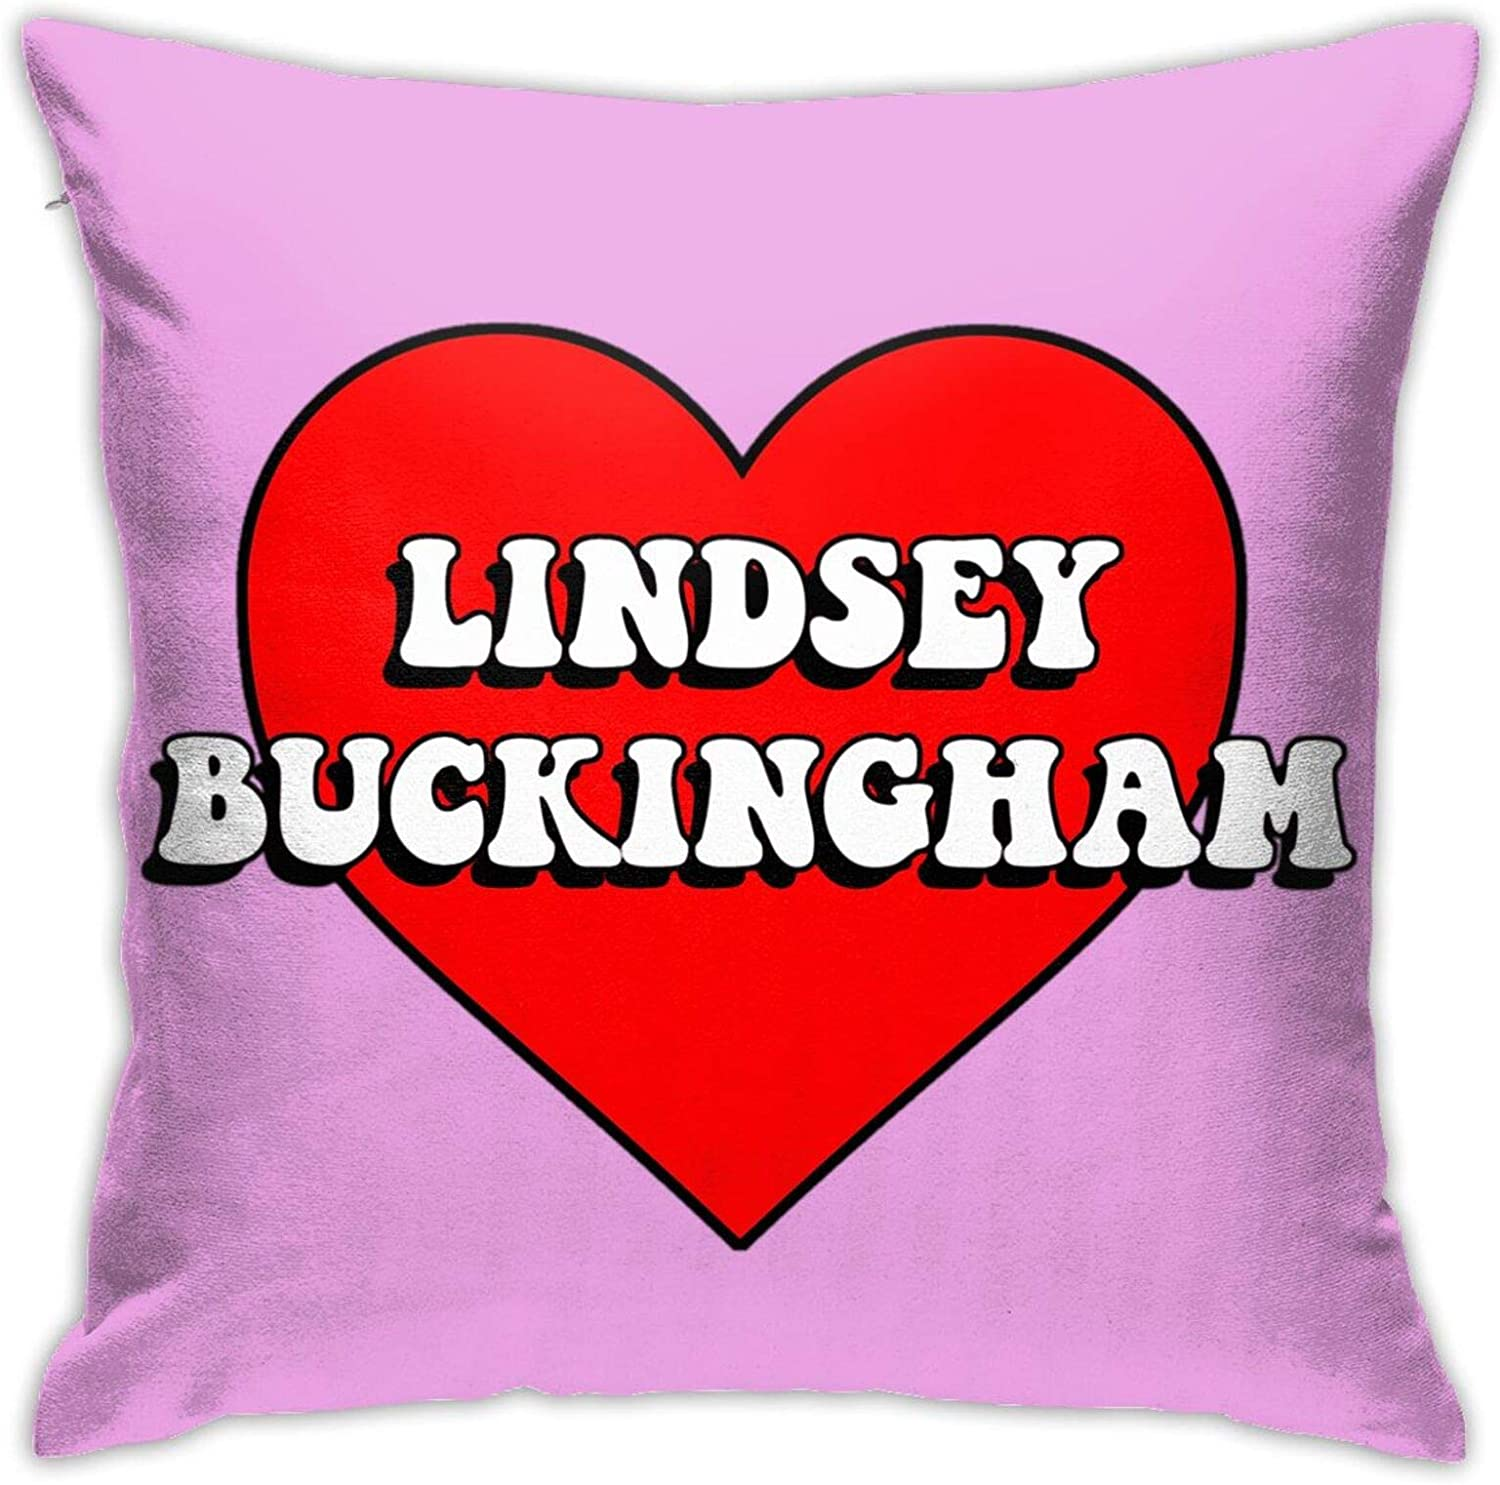 Lindsey Buckingham Pullover Hoodie Pillowcases, Floor Pillowcases, Pillowcases, Sofa Cushions, Cushion Covers, Backrest Covers, Car Cushion Interiors